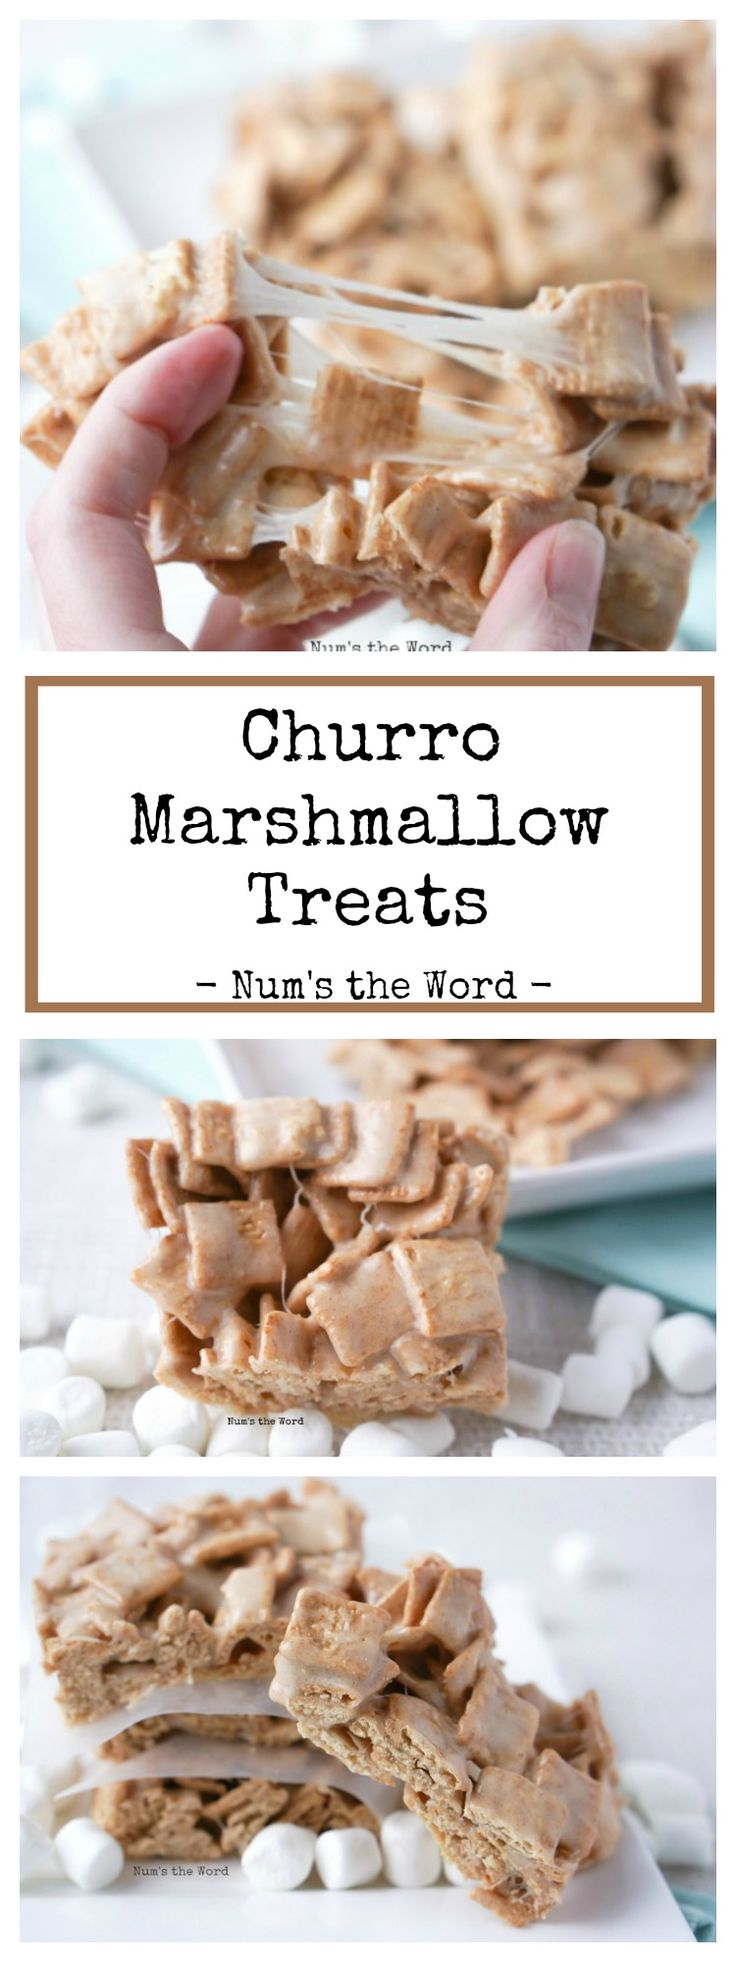 Churro Marshmallow Treats have 3 ingredients and are ready in 15 minutes.  Perfect for Cinco de Mayo or any day of the week!